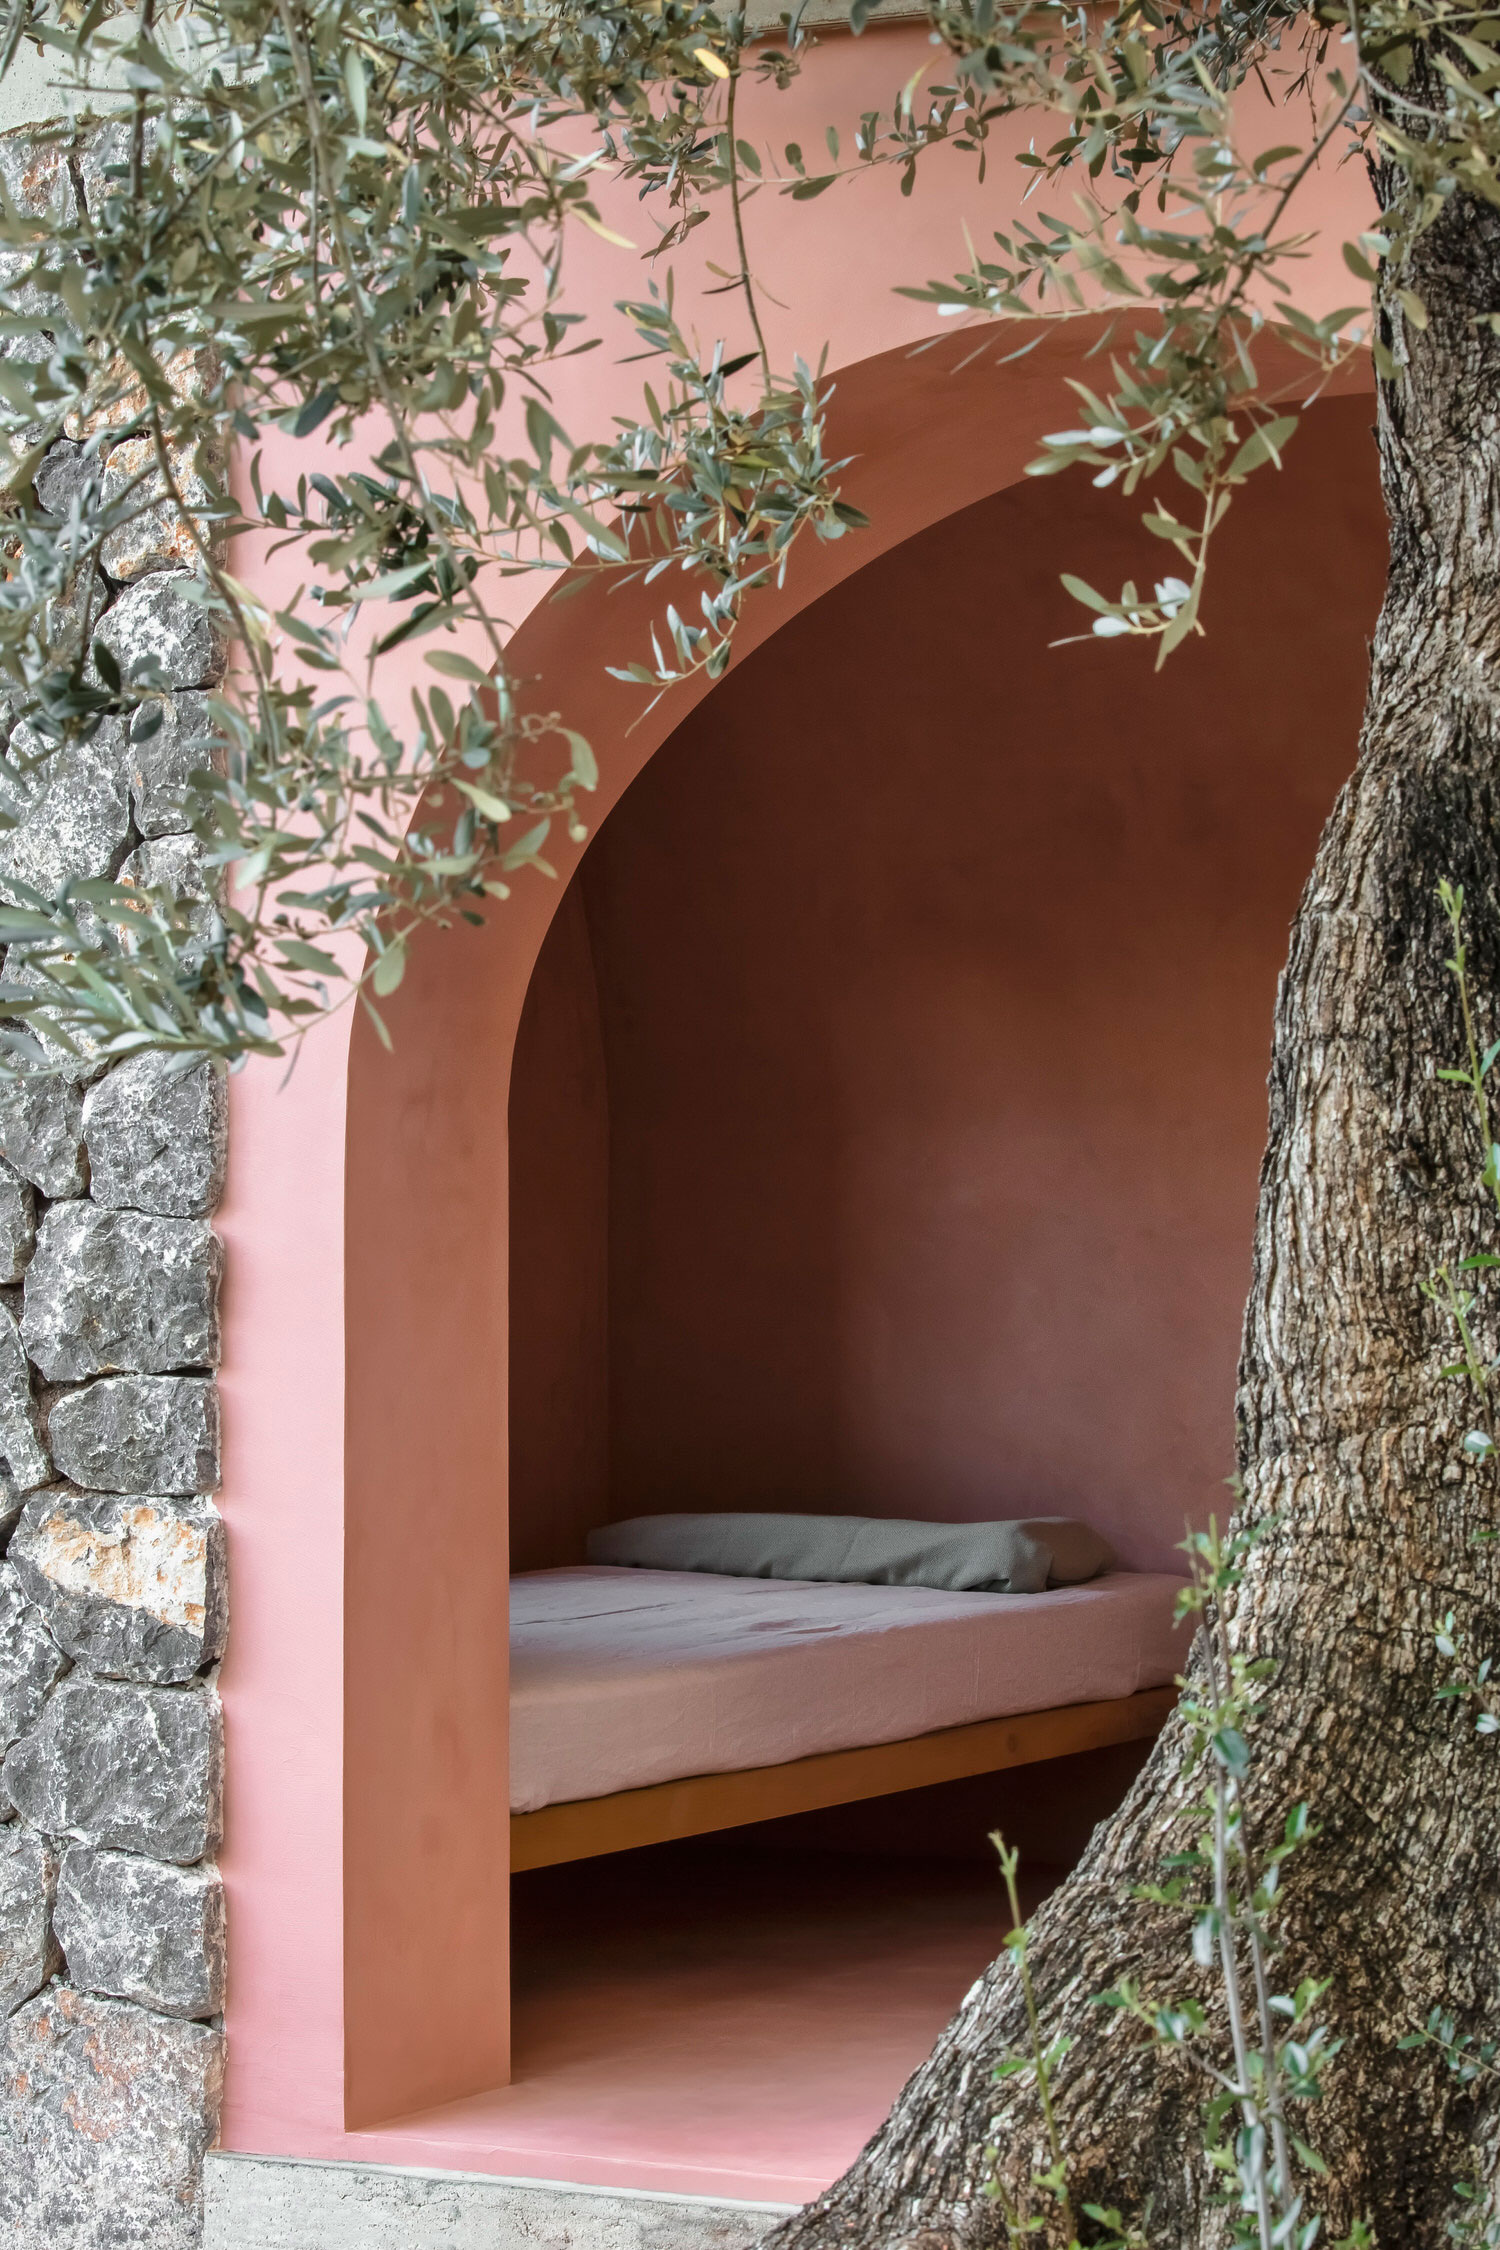 The Olive Houses, Palma De Mallorca, Mar Plus Ask, Photo Piet Albert Goethals | Yellowtrace